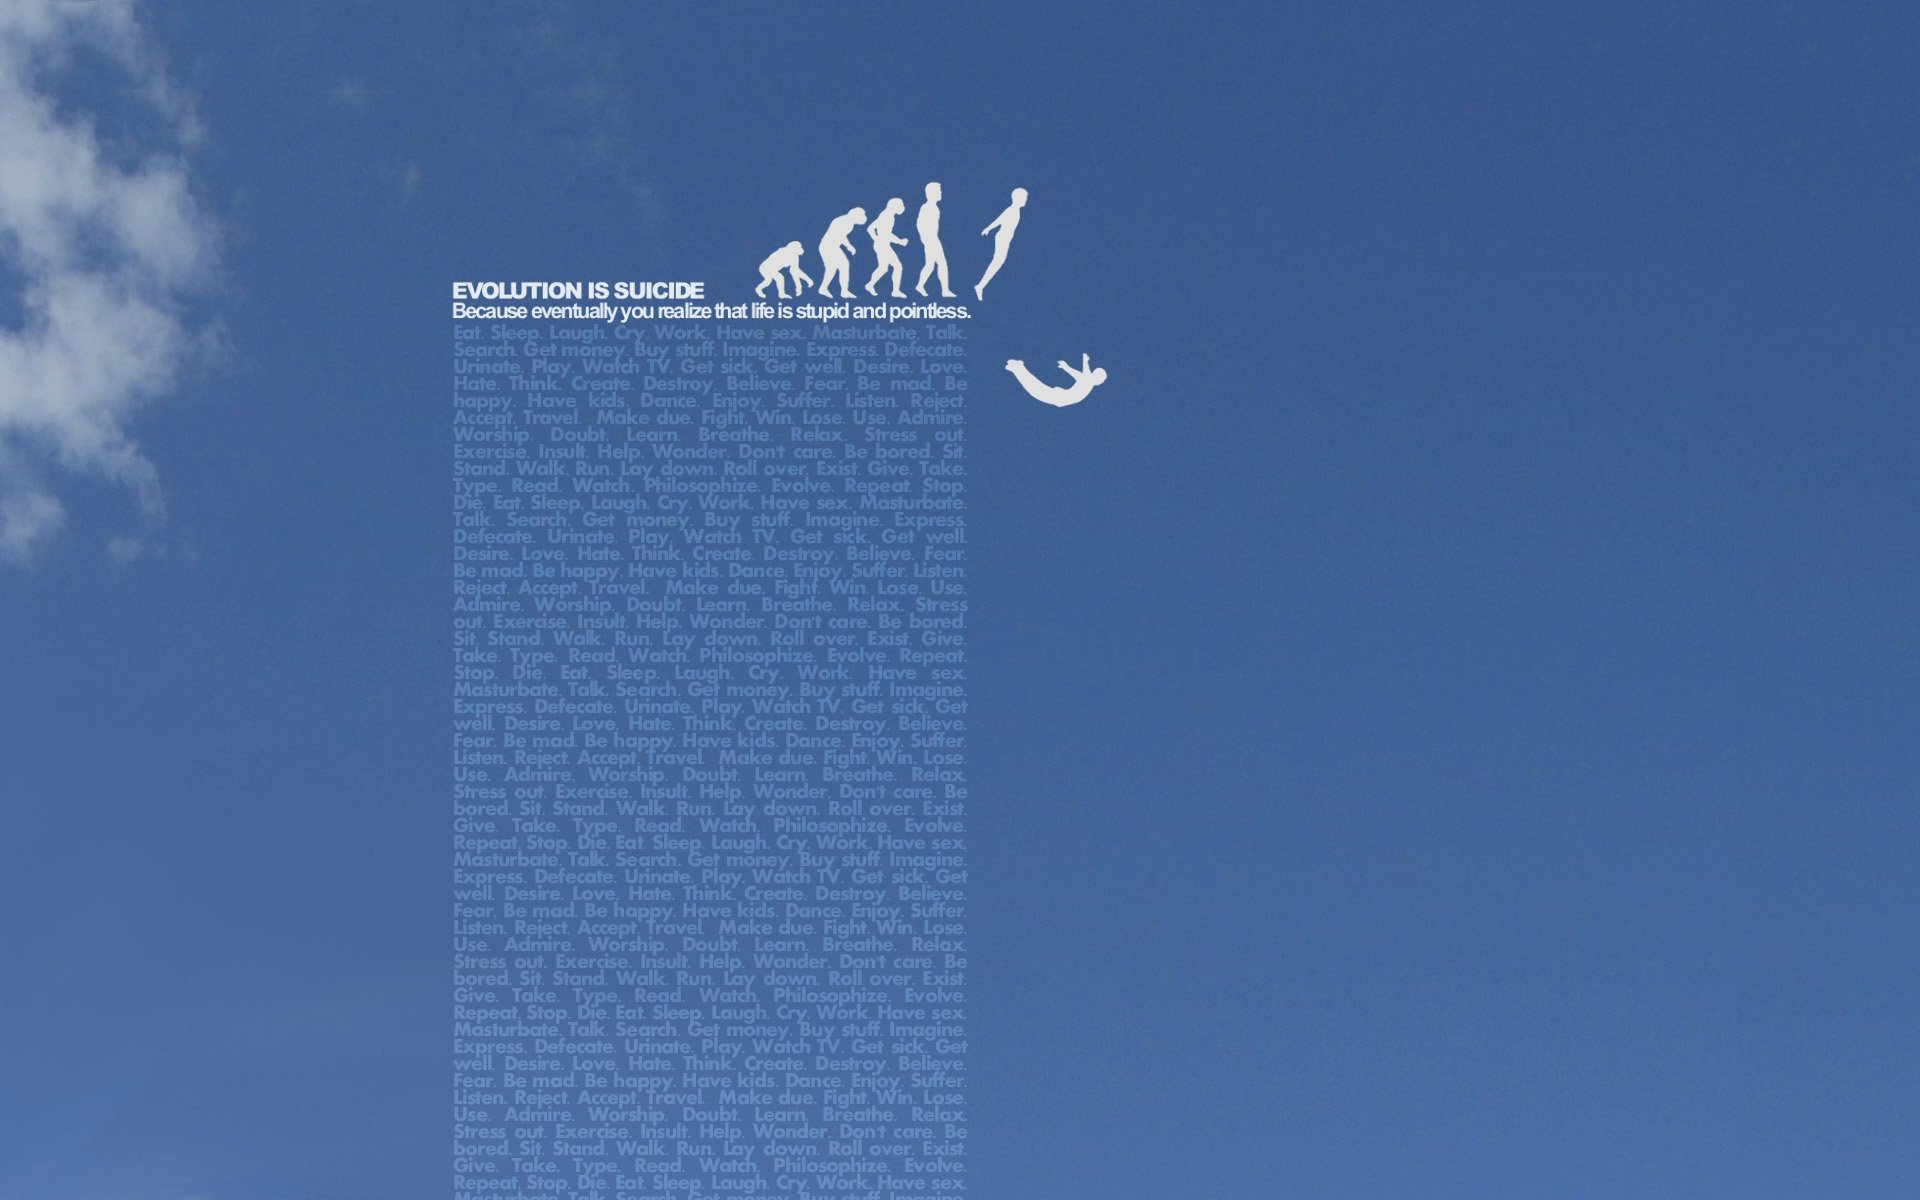 suicide typography evolution skyscapes wallpaper 1920x1200 241738 wallpaperup